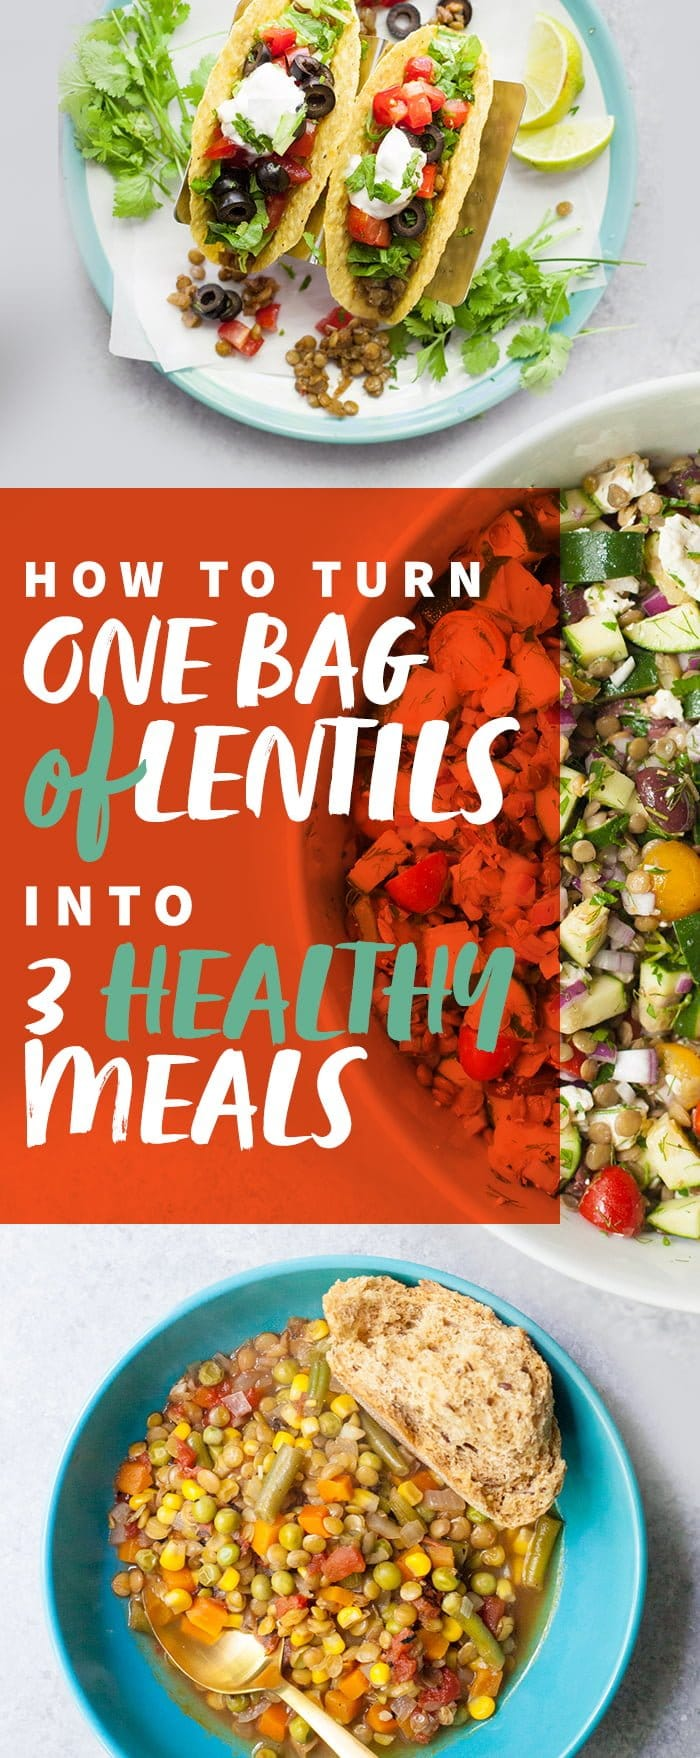 One Bag of Lentils, 3 Meals